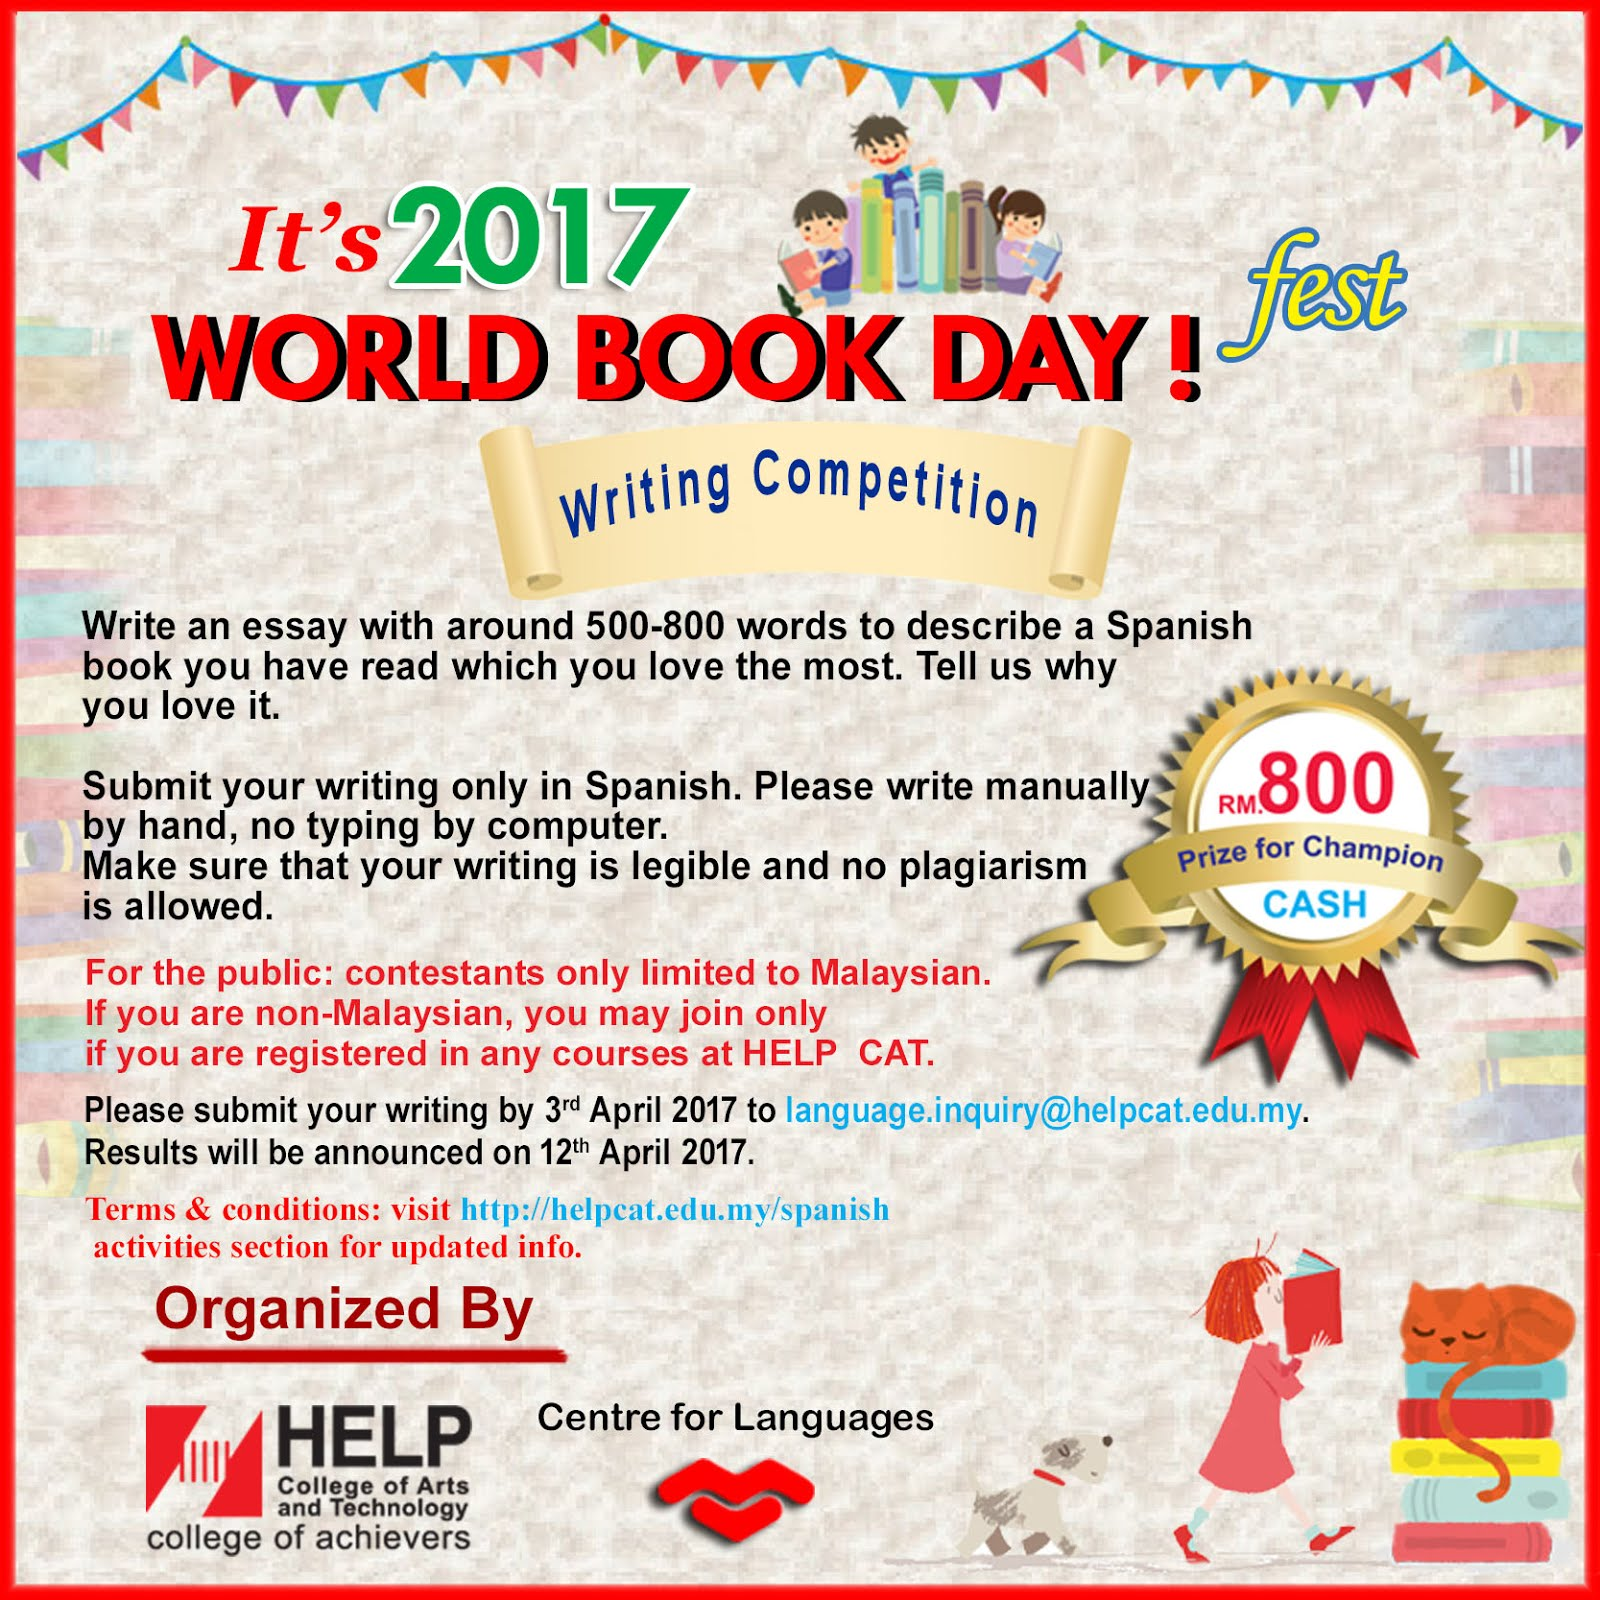 language and culture in kuala lumpur world book day writing write an essay around 500 800 words to describe a spanish book you have and which you love the most tell us why you love it